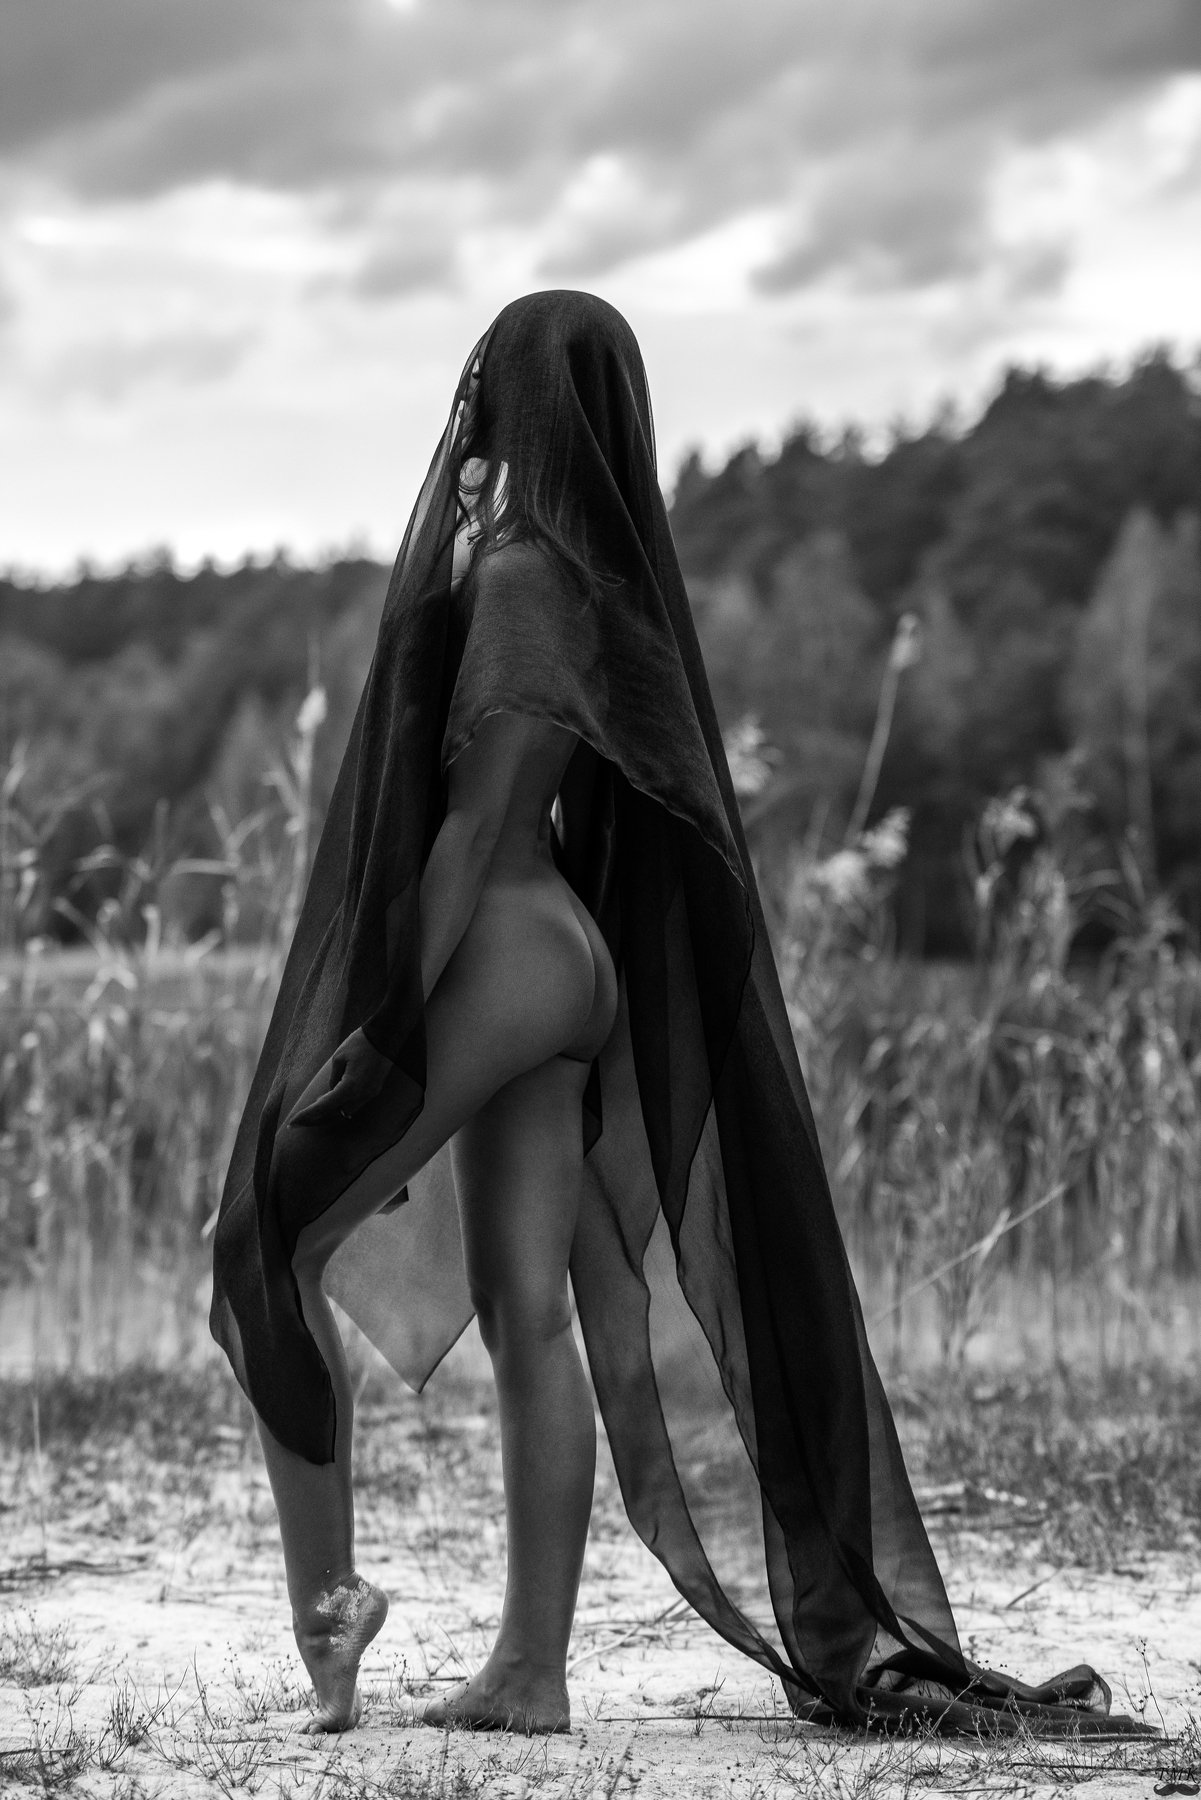 people, outdoor, nature, summer, woman, nude, beauty, bw, monochrome, black and white, dramatic, Masoit Tomas